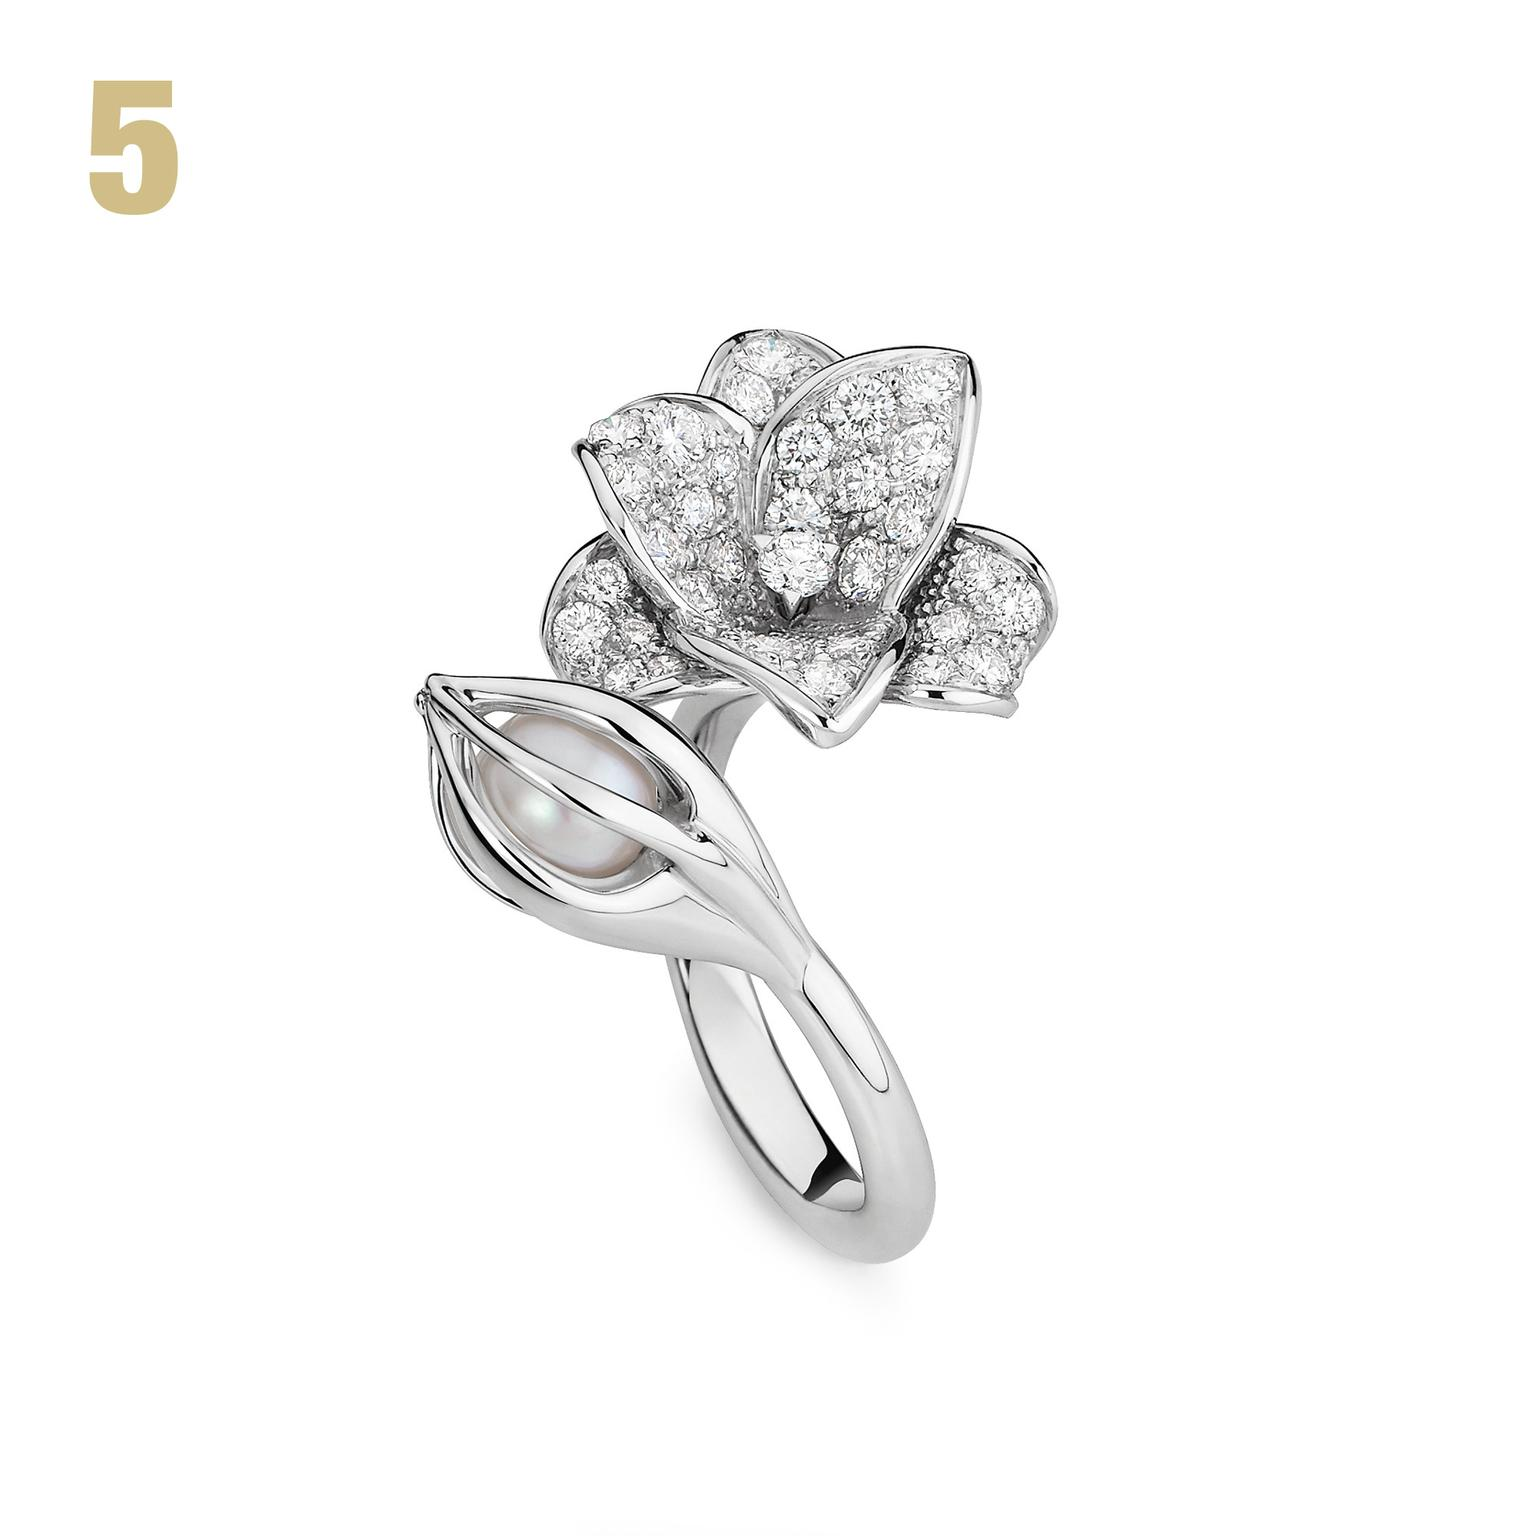 Mellerio dits Meller diamond and pearl ring